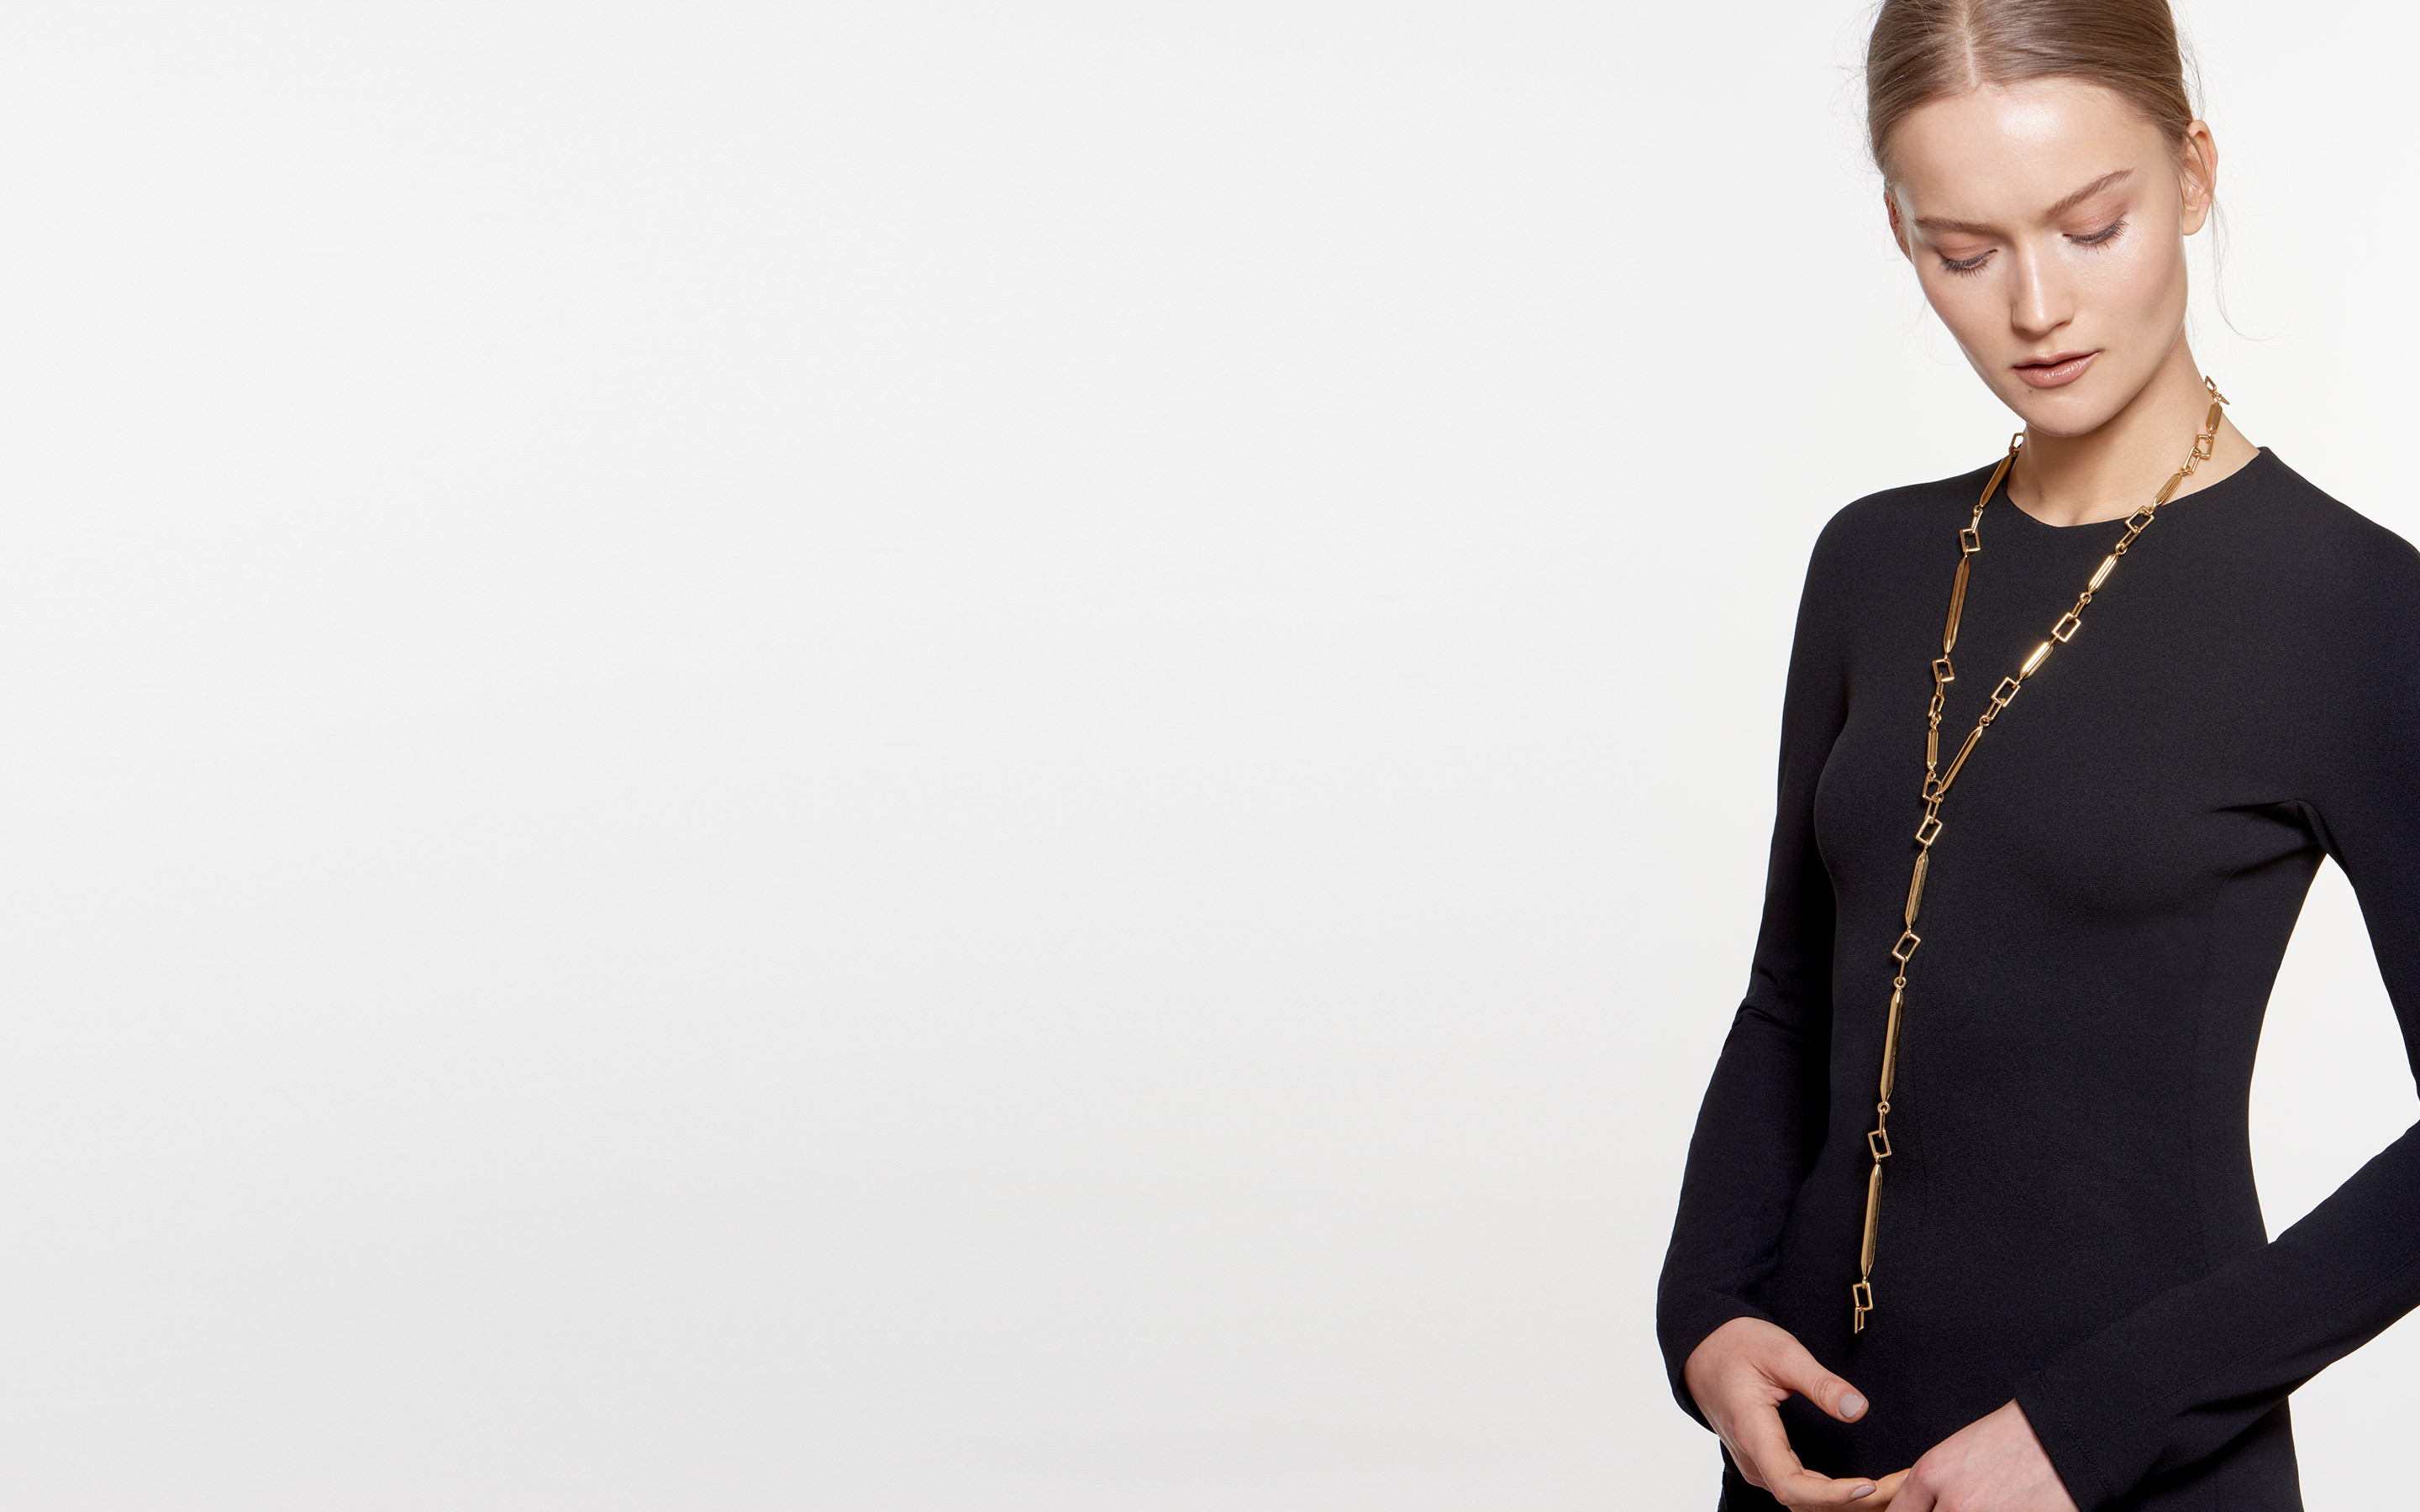 pensive model showcasing 22 karat gold necklace fashioned of geometric links